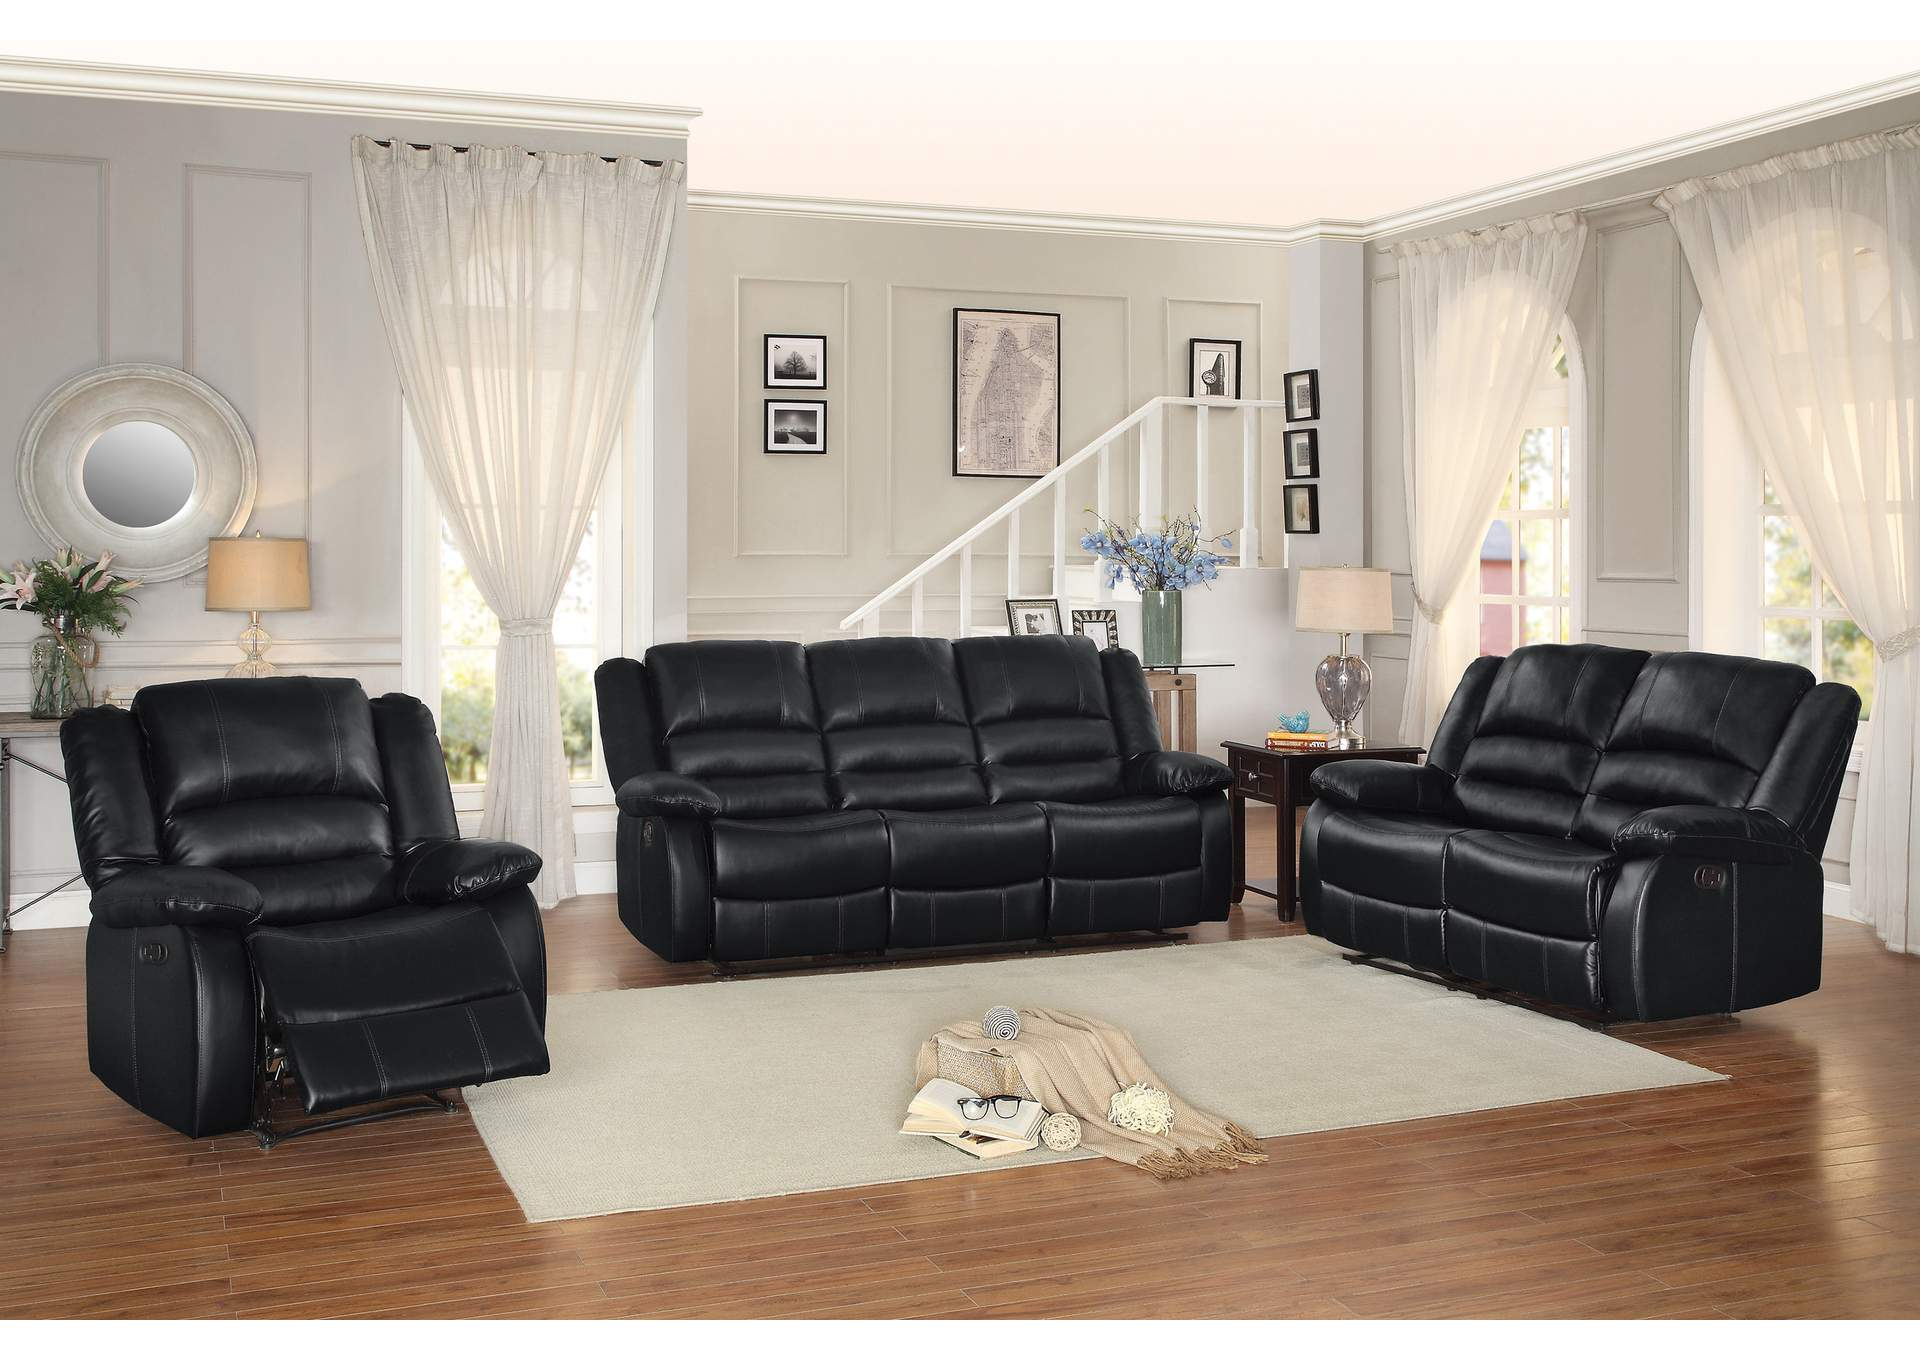 Black Double Reclining Sofa,Homelegance